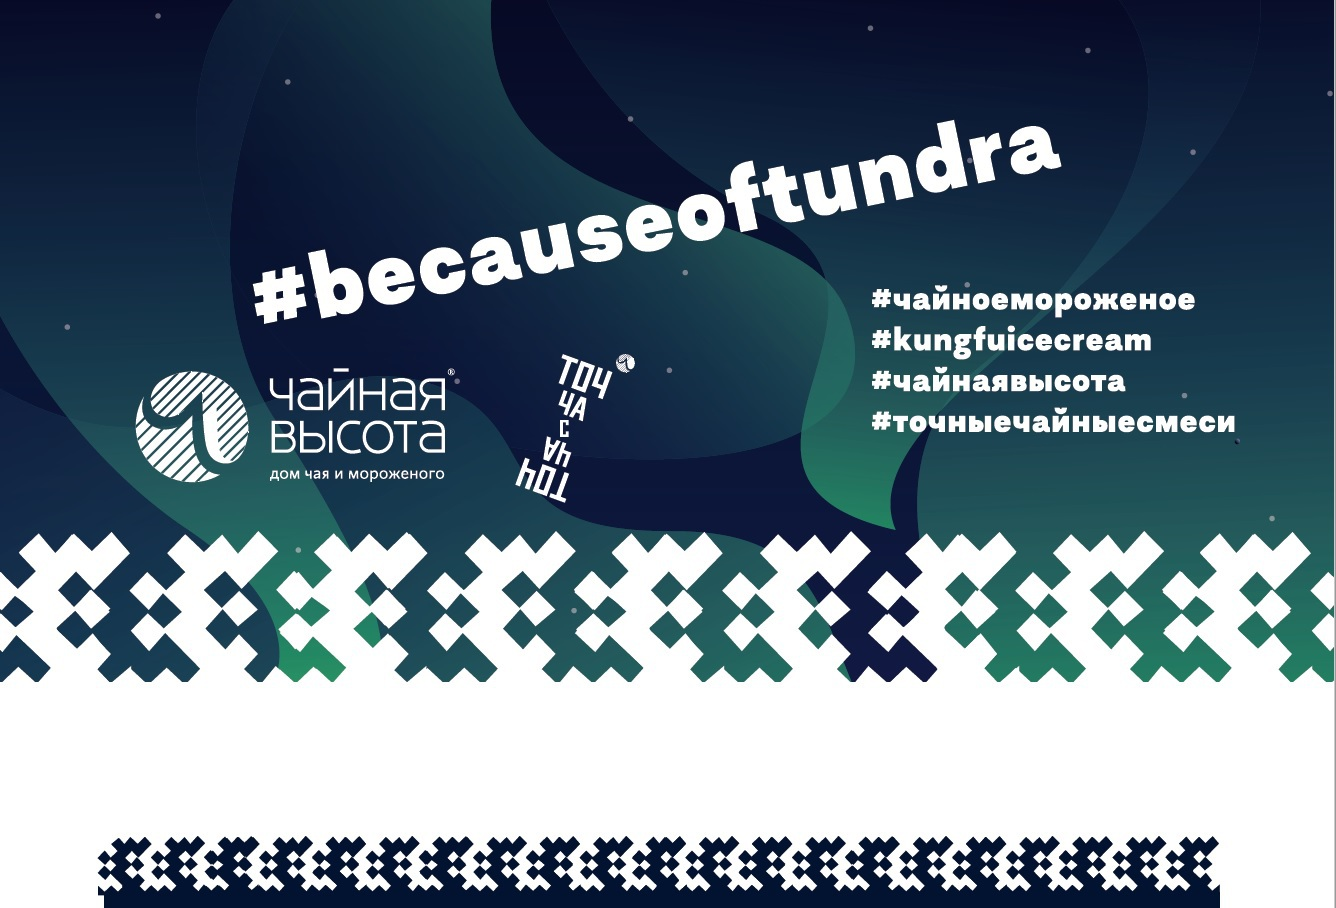 becauseoftundra2